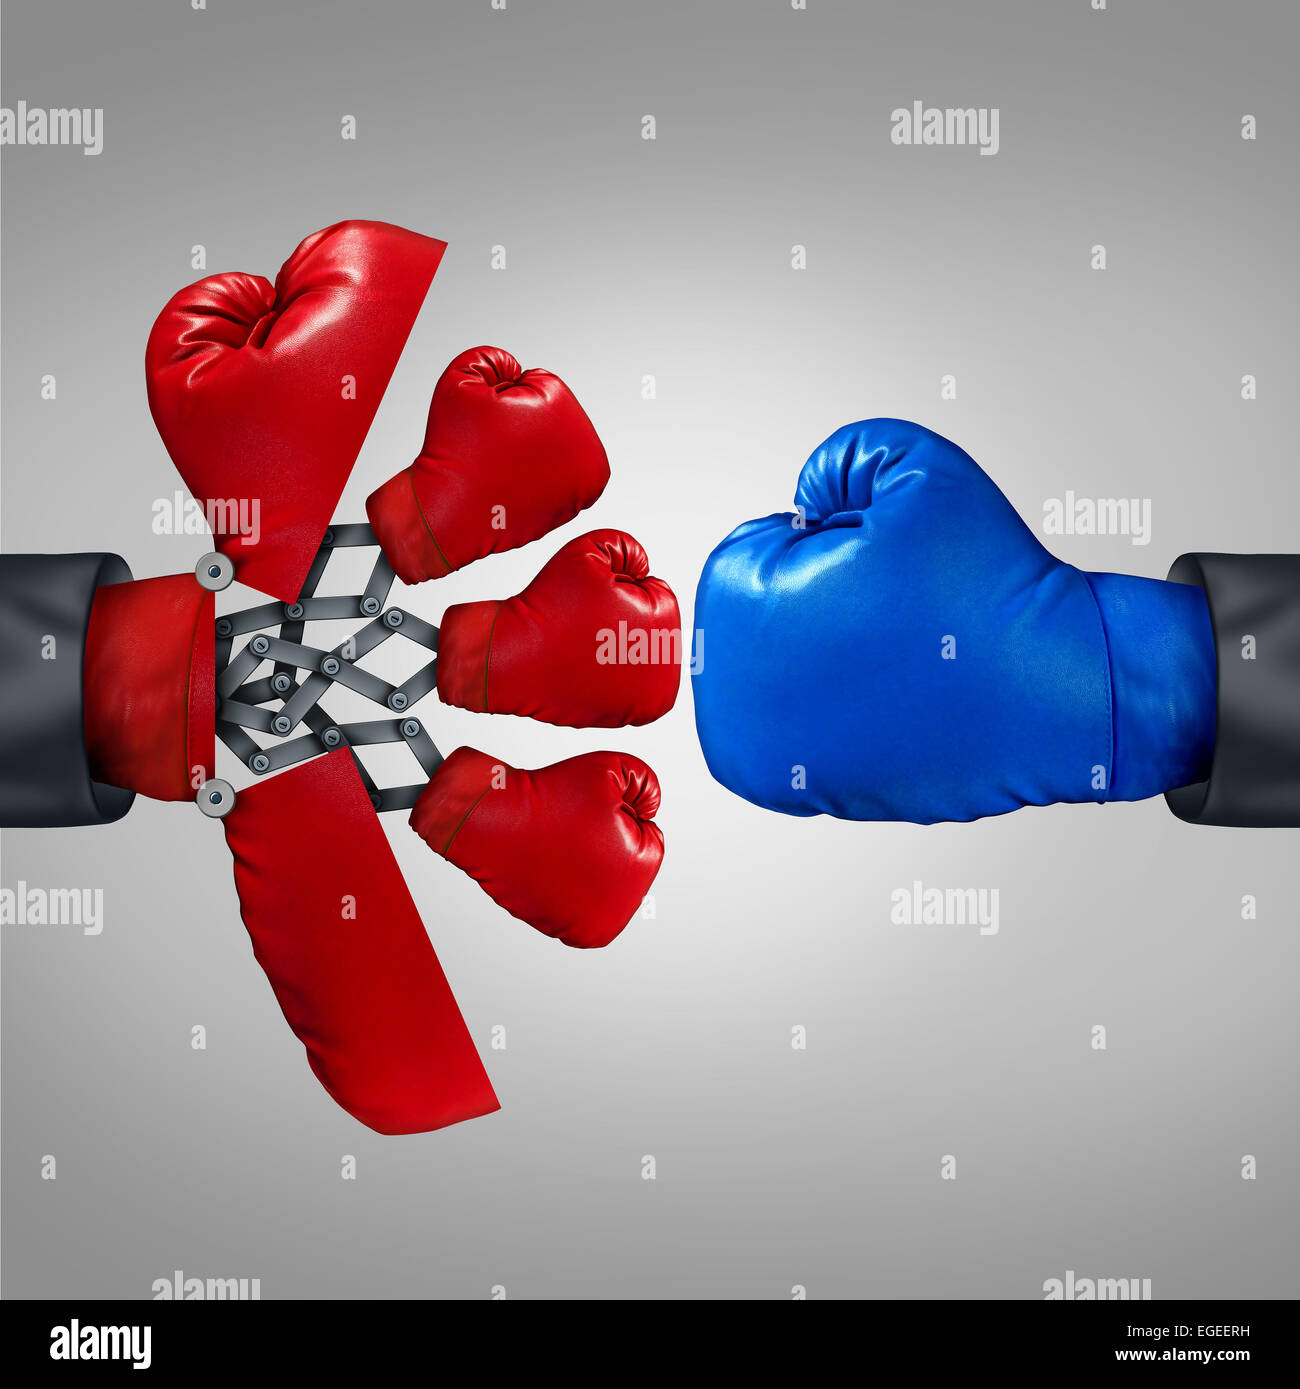 Strategy advantage and business competitiveness concept as a red boxing glove opening up to a secret weapon to reveal - Stock Image